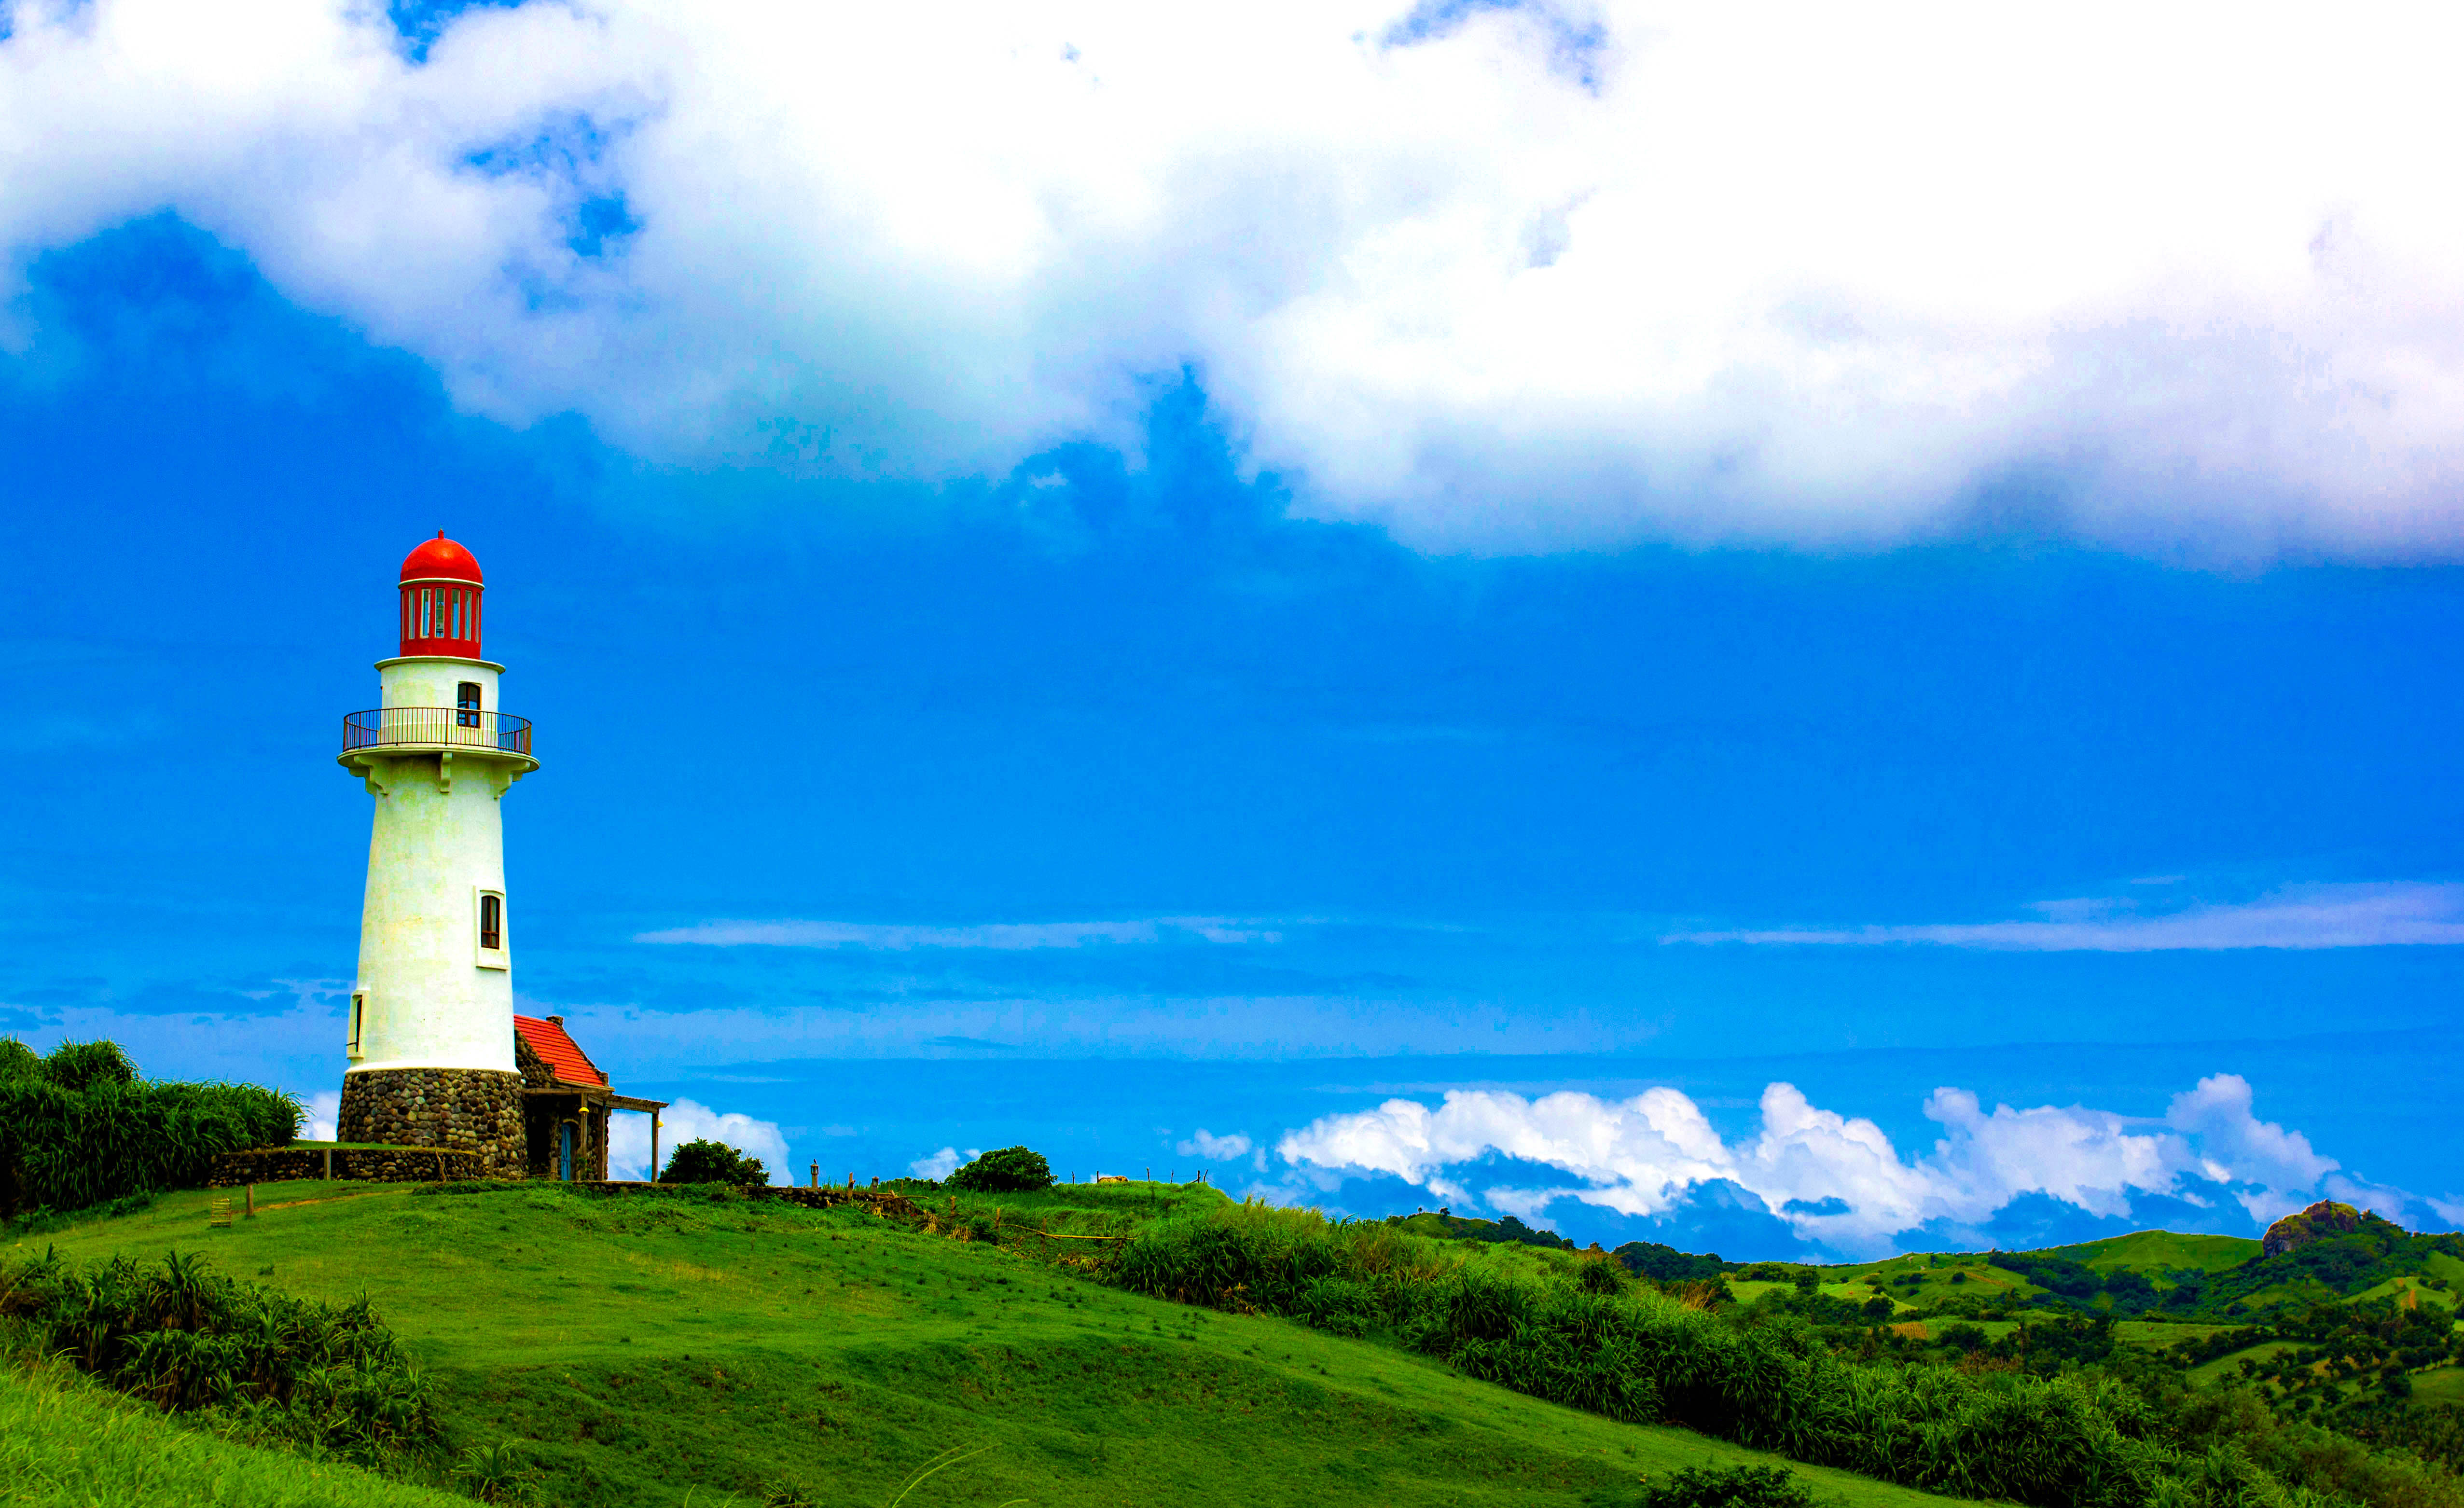 Lone lighthouse stands upon a green hilly land beneath a blue sky with clouds in Batanes, Philippines